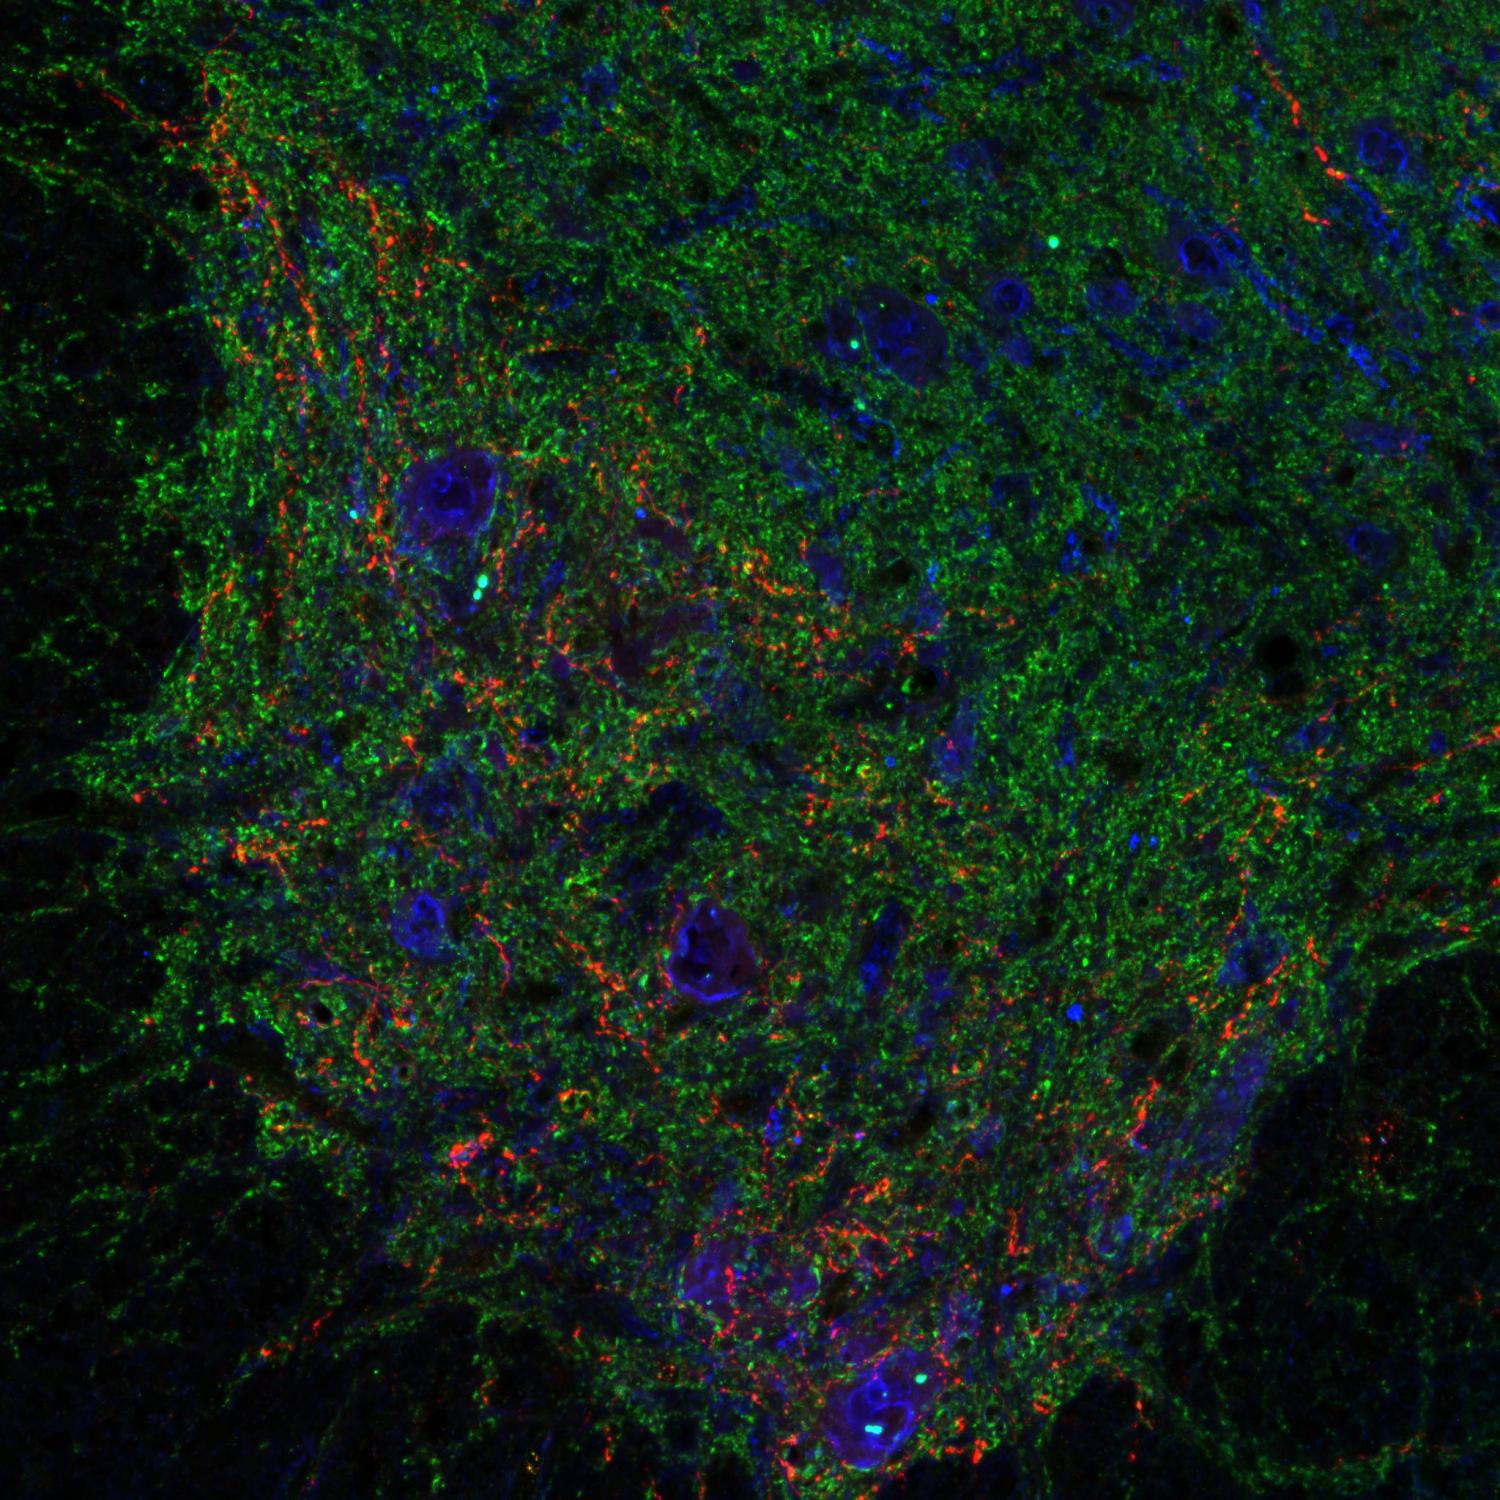 regeneration of neurons The science of neurogenesis suggests it's possible to create new neurons in the  hippocampus, which can improve a person's memory and.